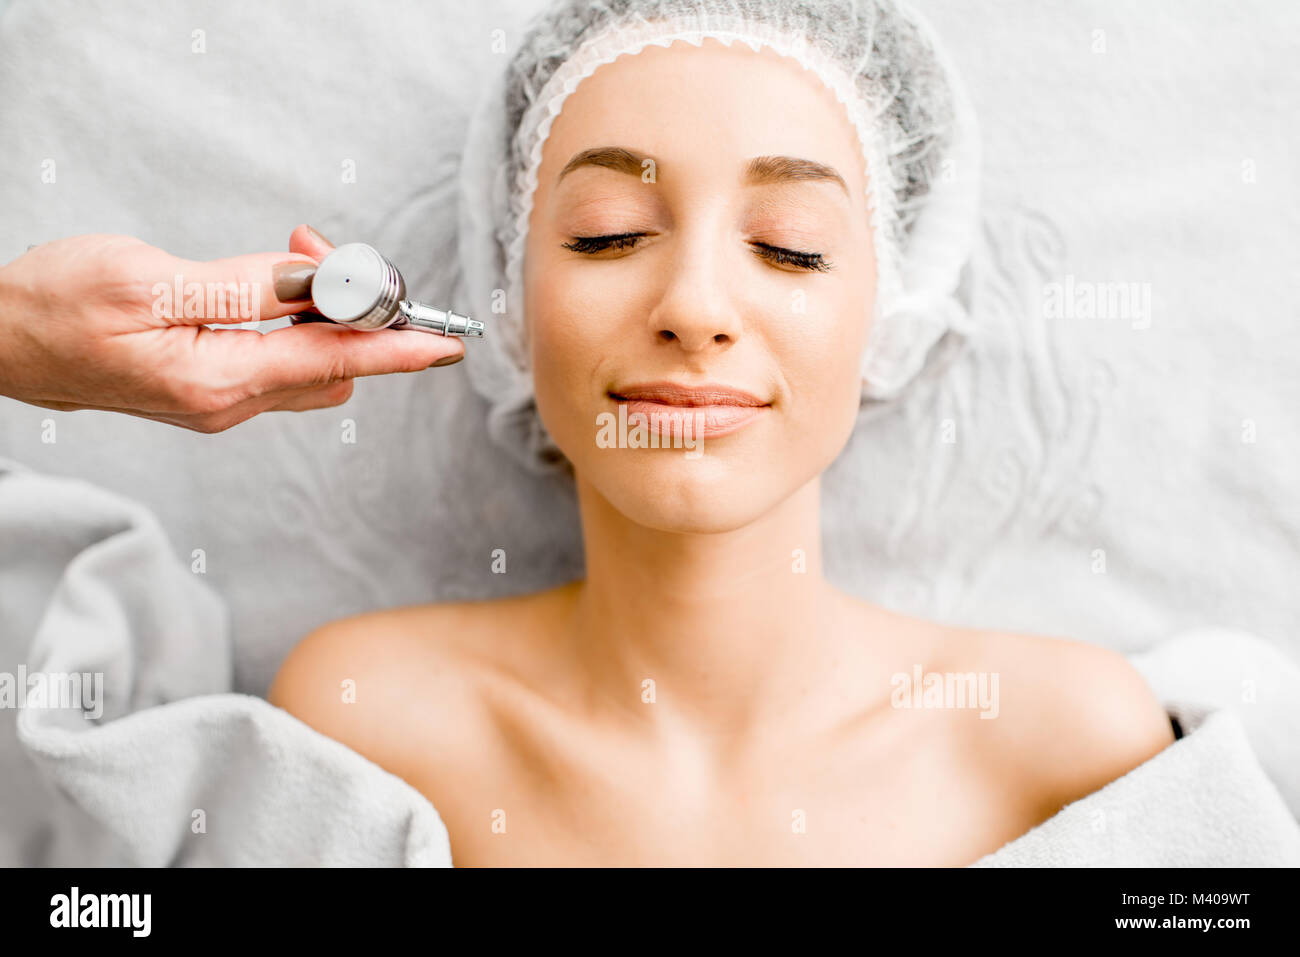 Woman during the hydration skin procedure - Stock Image